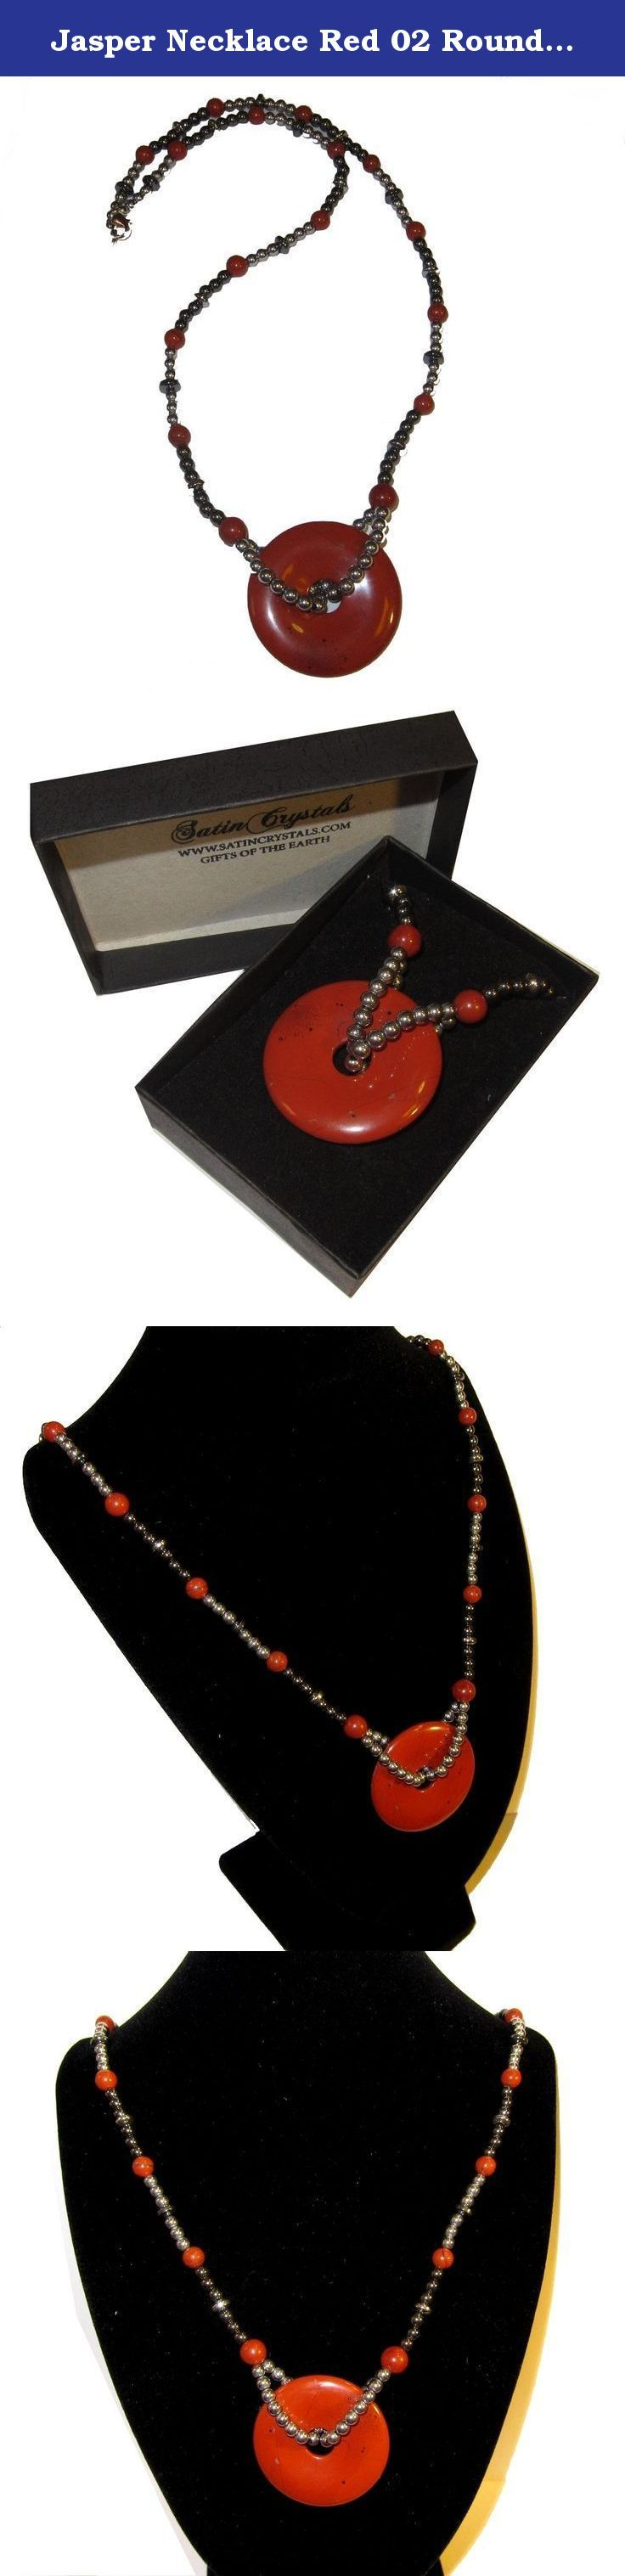 """Jasper Necklace Red 02 Round Medallion Crystal Hematite Healing Stone Root Chakra 21"""" (Gift Box). Crystal Jewelry This beautiful crystal necklace contains a large eye-catching red jasper pendant stone strung with hematite and decorative beads. The round pendant is a glossy red with black patterns. The cord contains jasper stones, lines of hematite, and lines of silver toned metal beads that come to a lobster claw clasp. Receive the exact elite necklace featured when you order from Satin..."""